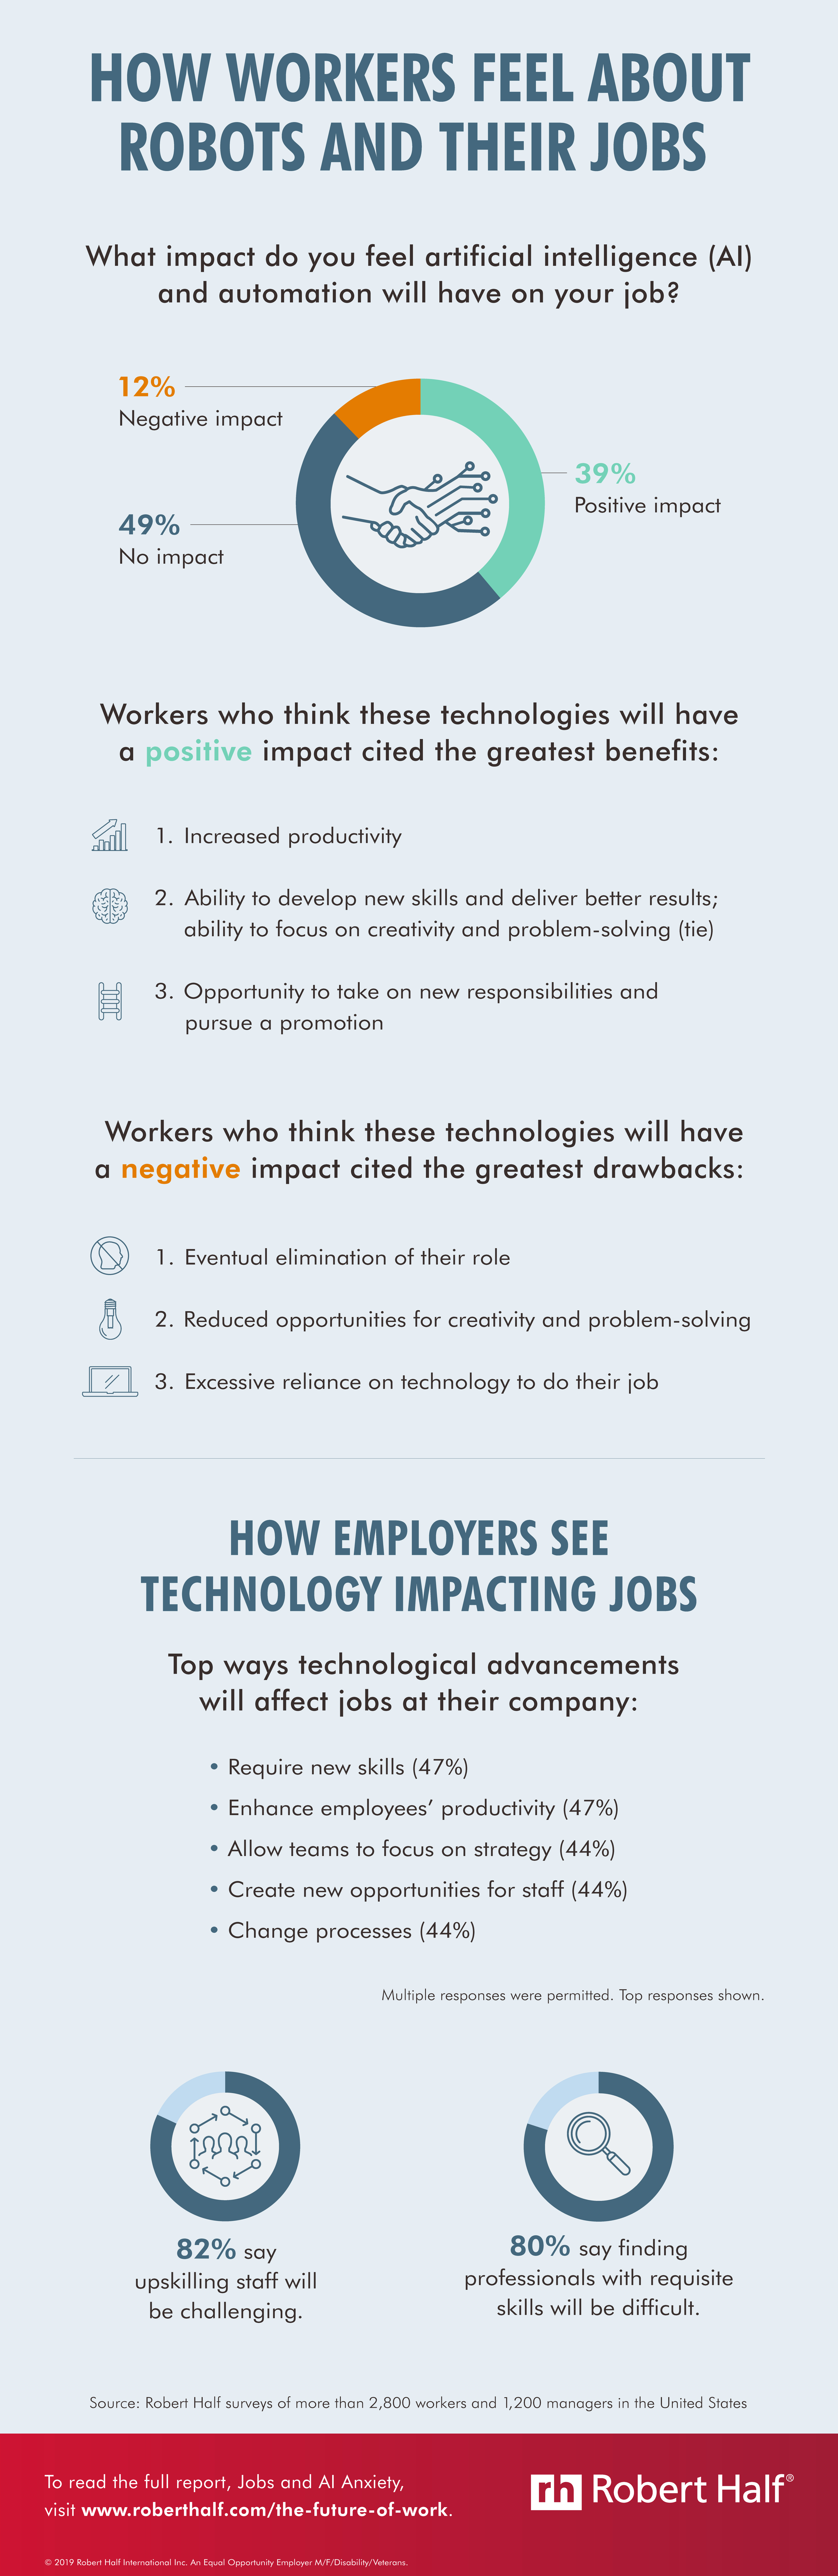 How Workers Feel About Robots and Their Jobs | Robert Half